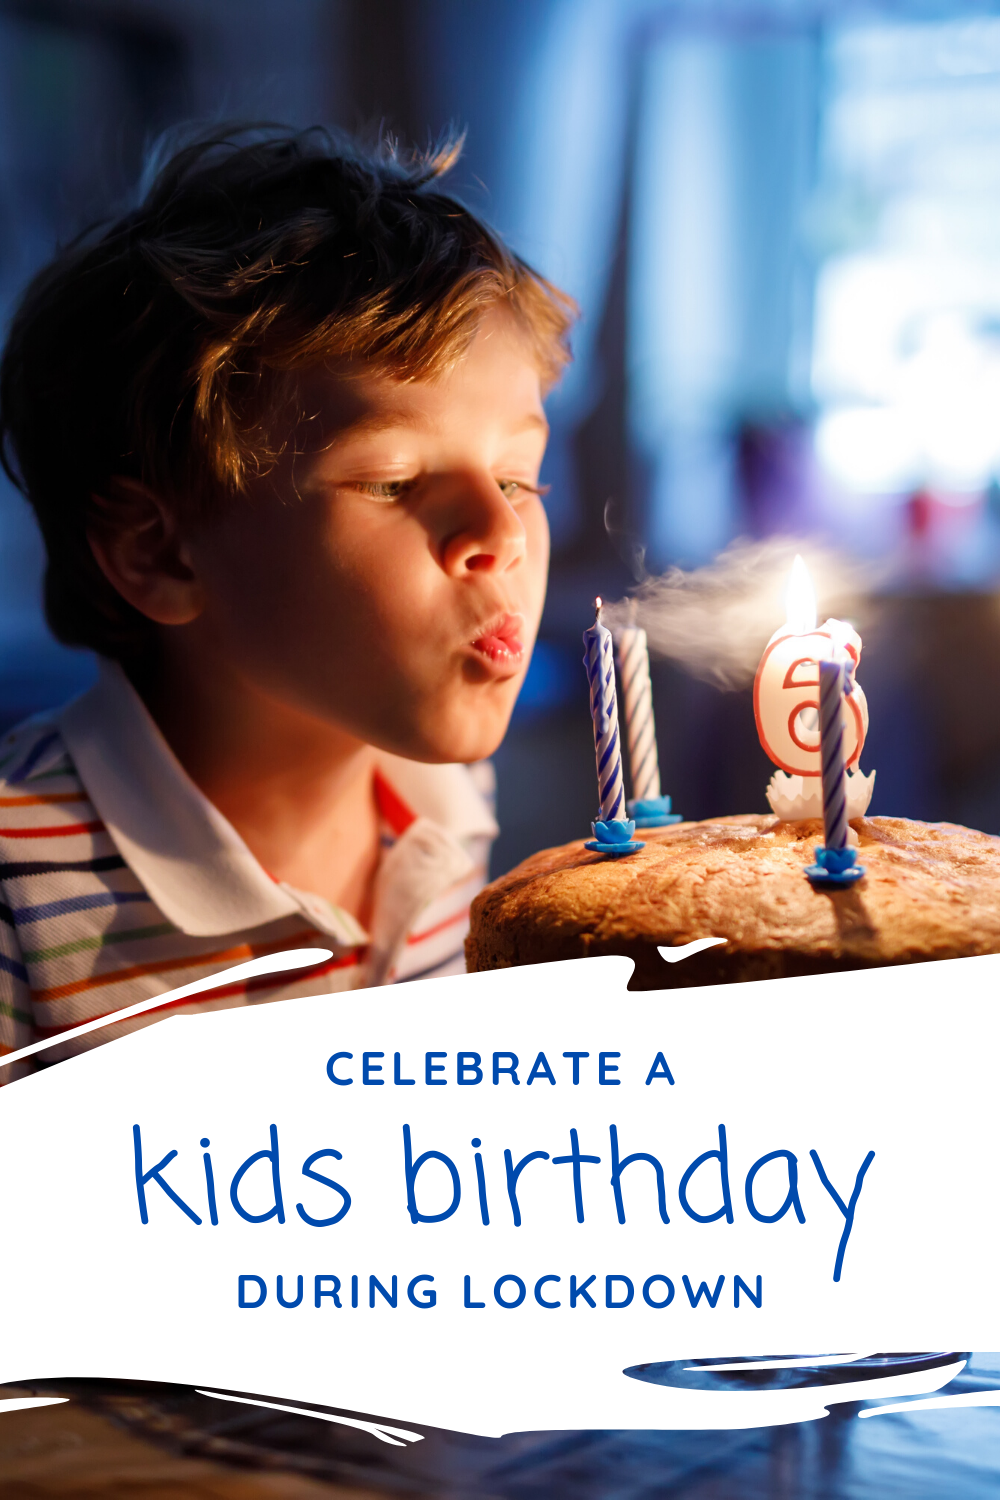 Here are some ideas for how to celebrate and make a kids birthday special during social distancing and lockdown.